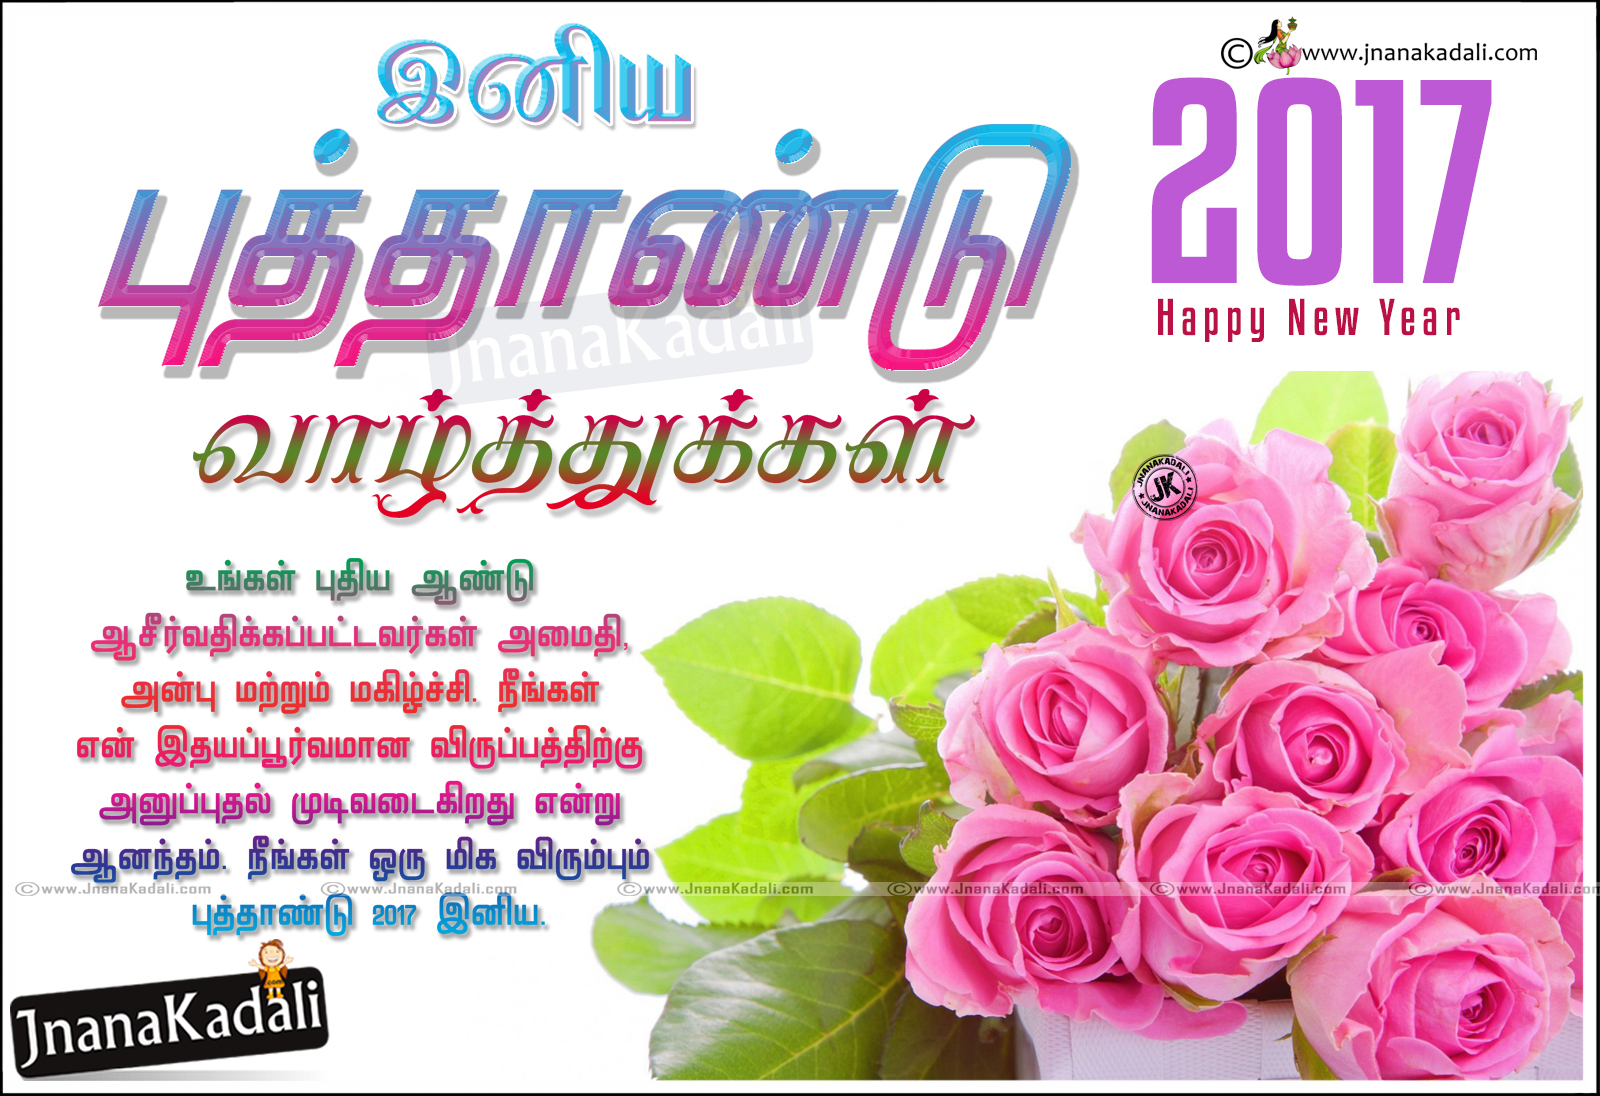 Happy new year 2017 greetings quotes with hd wallpapers in tamil best new year 2017 greetings with hd wallpapers in tamil new year tamil messages new year tamil status images greetings on new year 2017 in tamil kristyandbryce Gallery